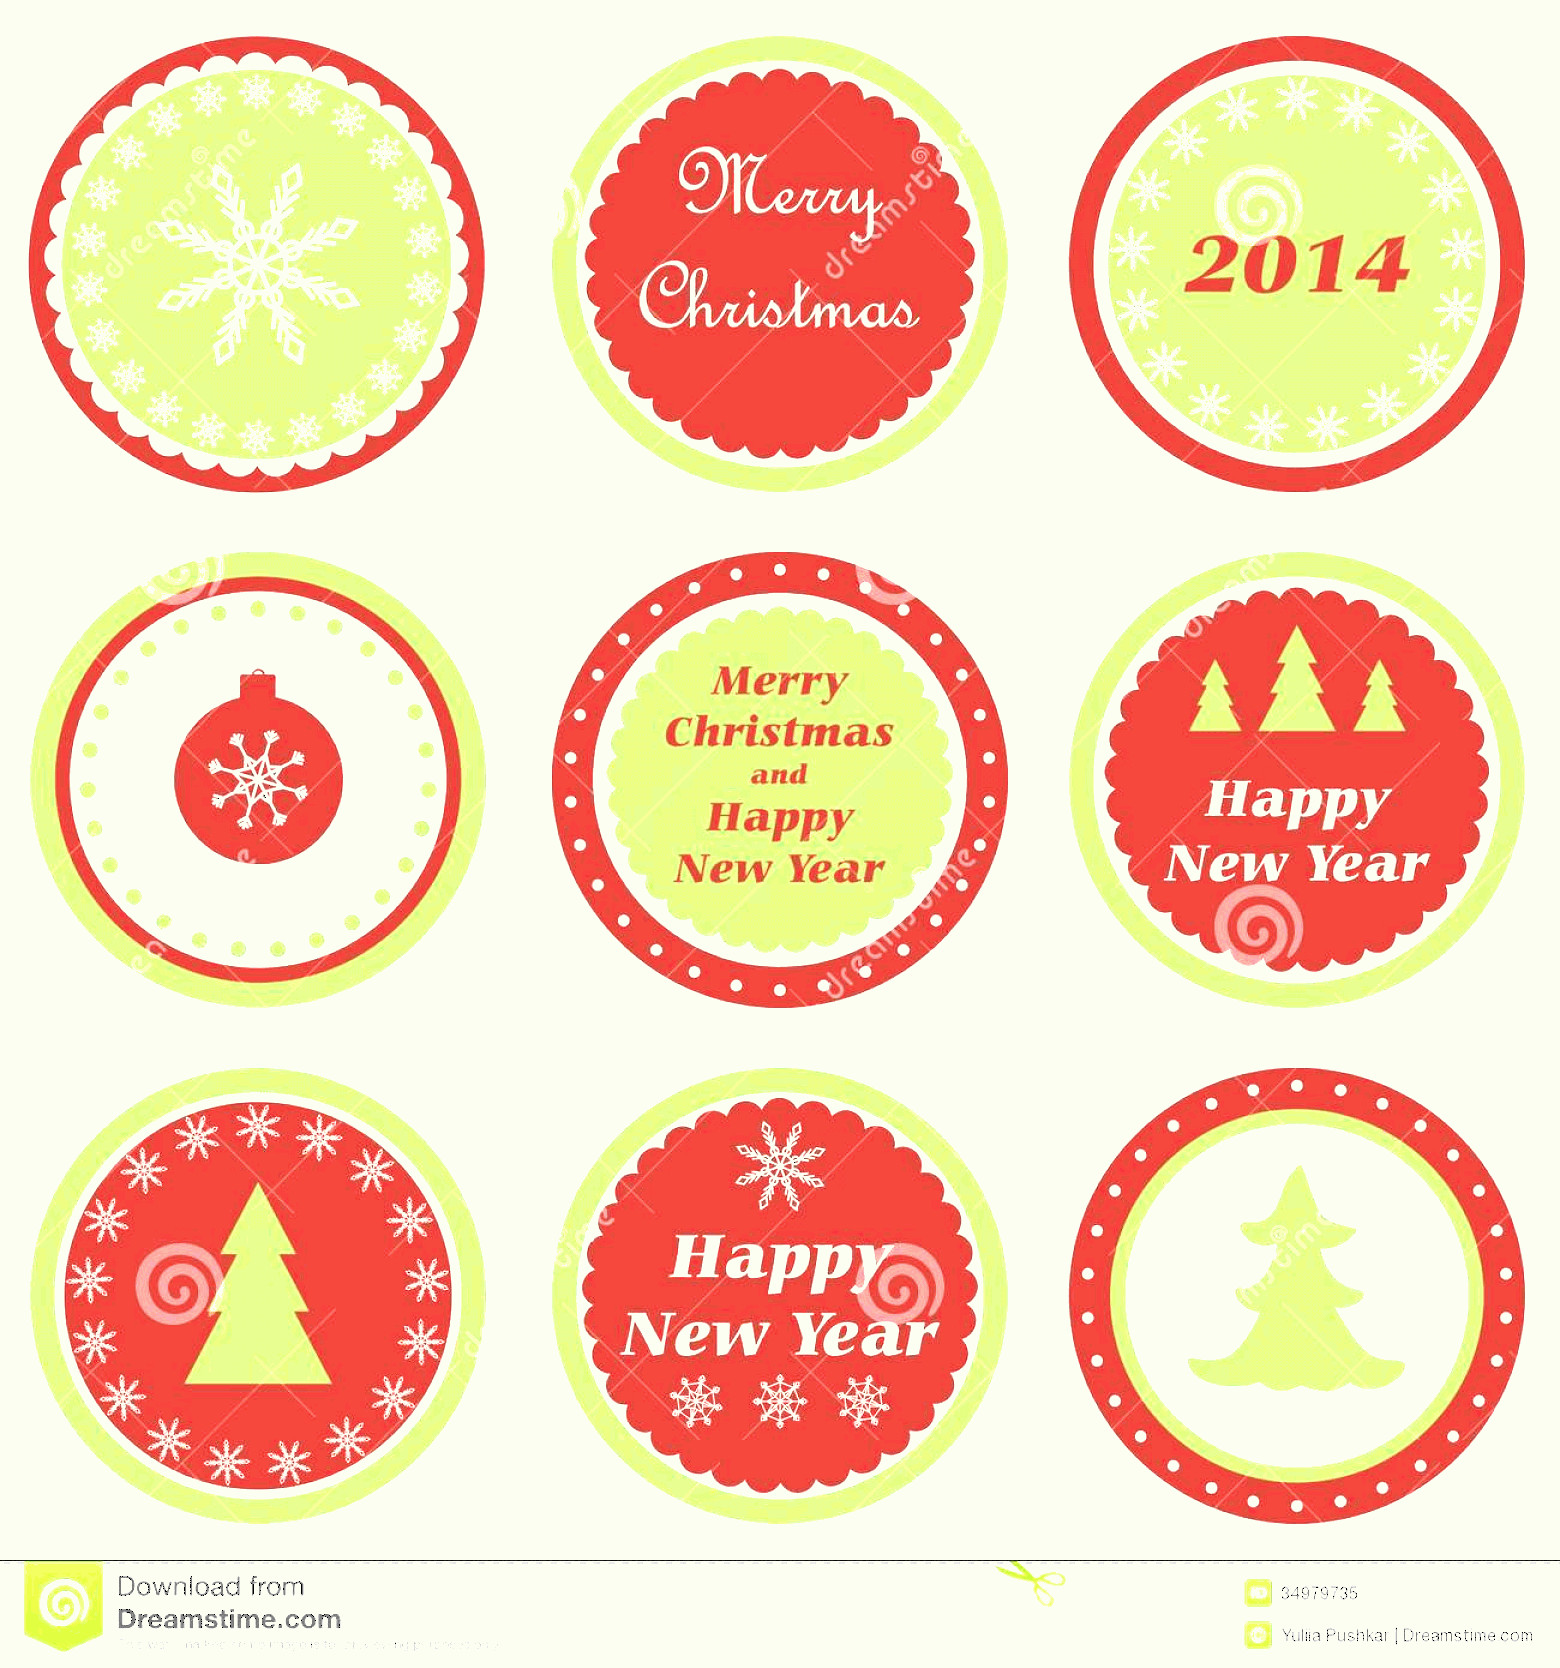 Vector Christmas Toppers: Royalty Free Stock Photo Christmas Cupcake Toppers Set Tags New Year Image